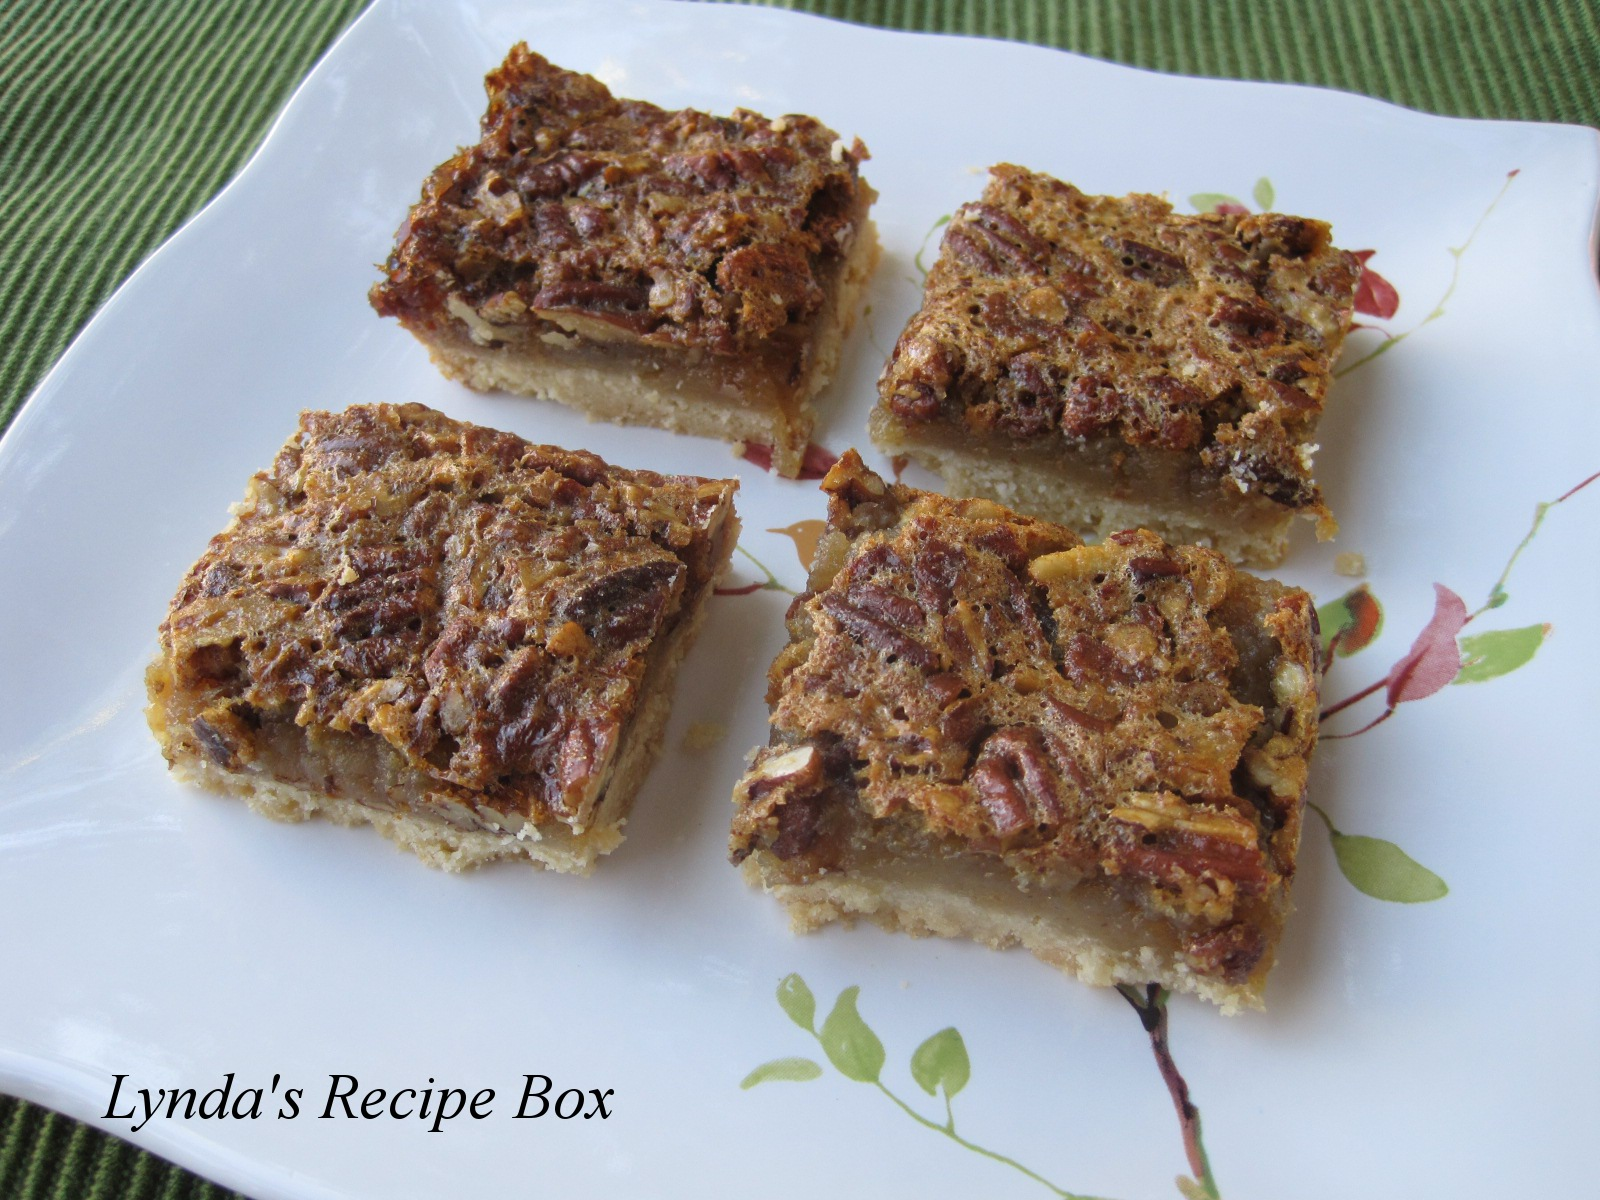 Lynda's Recipe Box: Pecan Pie Bars